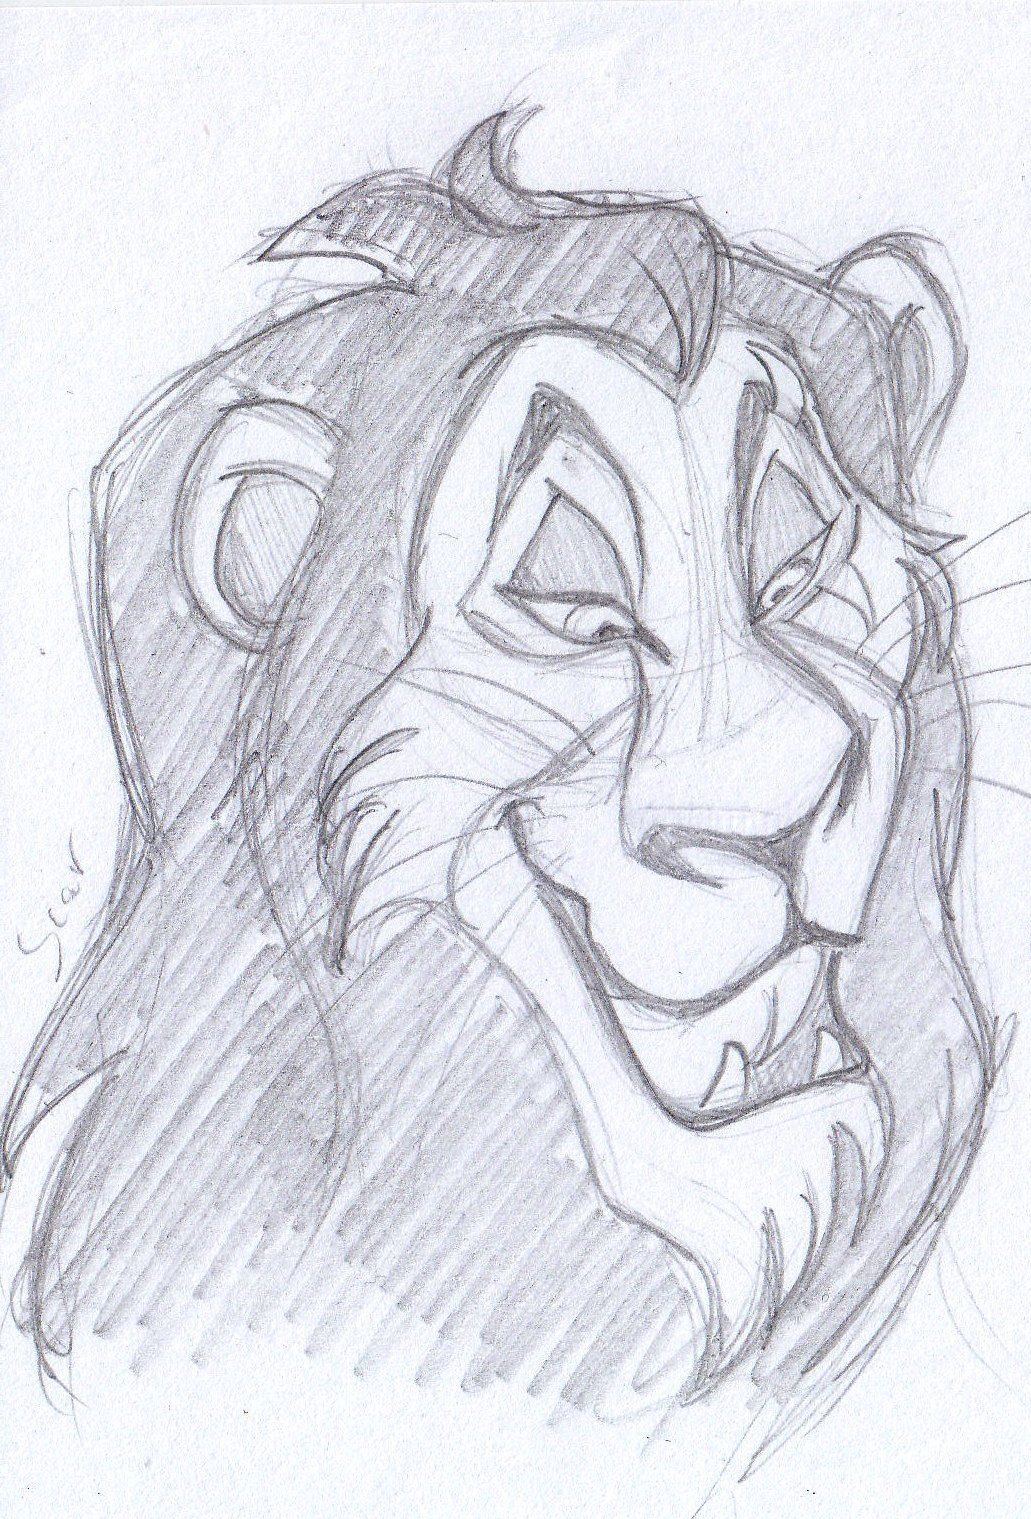 Disney Sketch - Scar The Lion King 1994 | Art By Anna Helena | Pinterest | Lions Sketches And ...